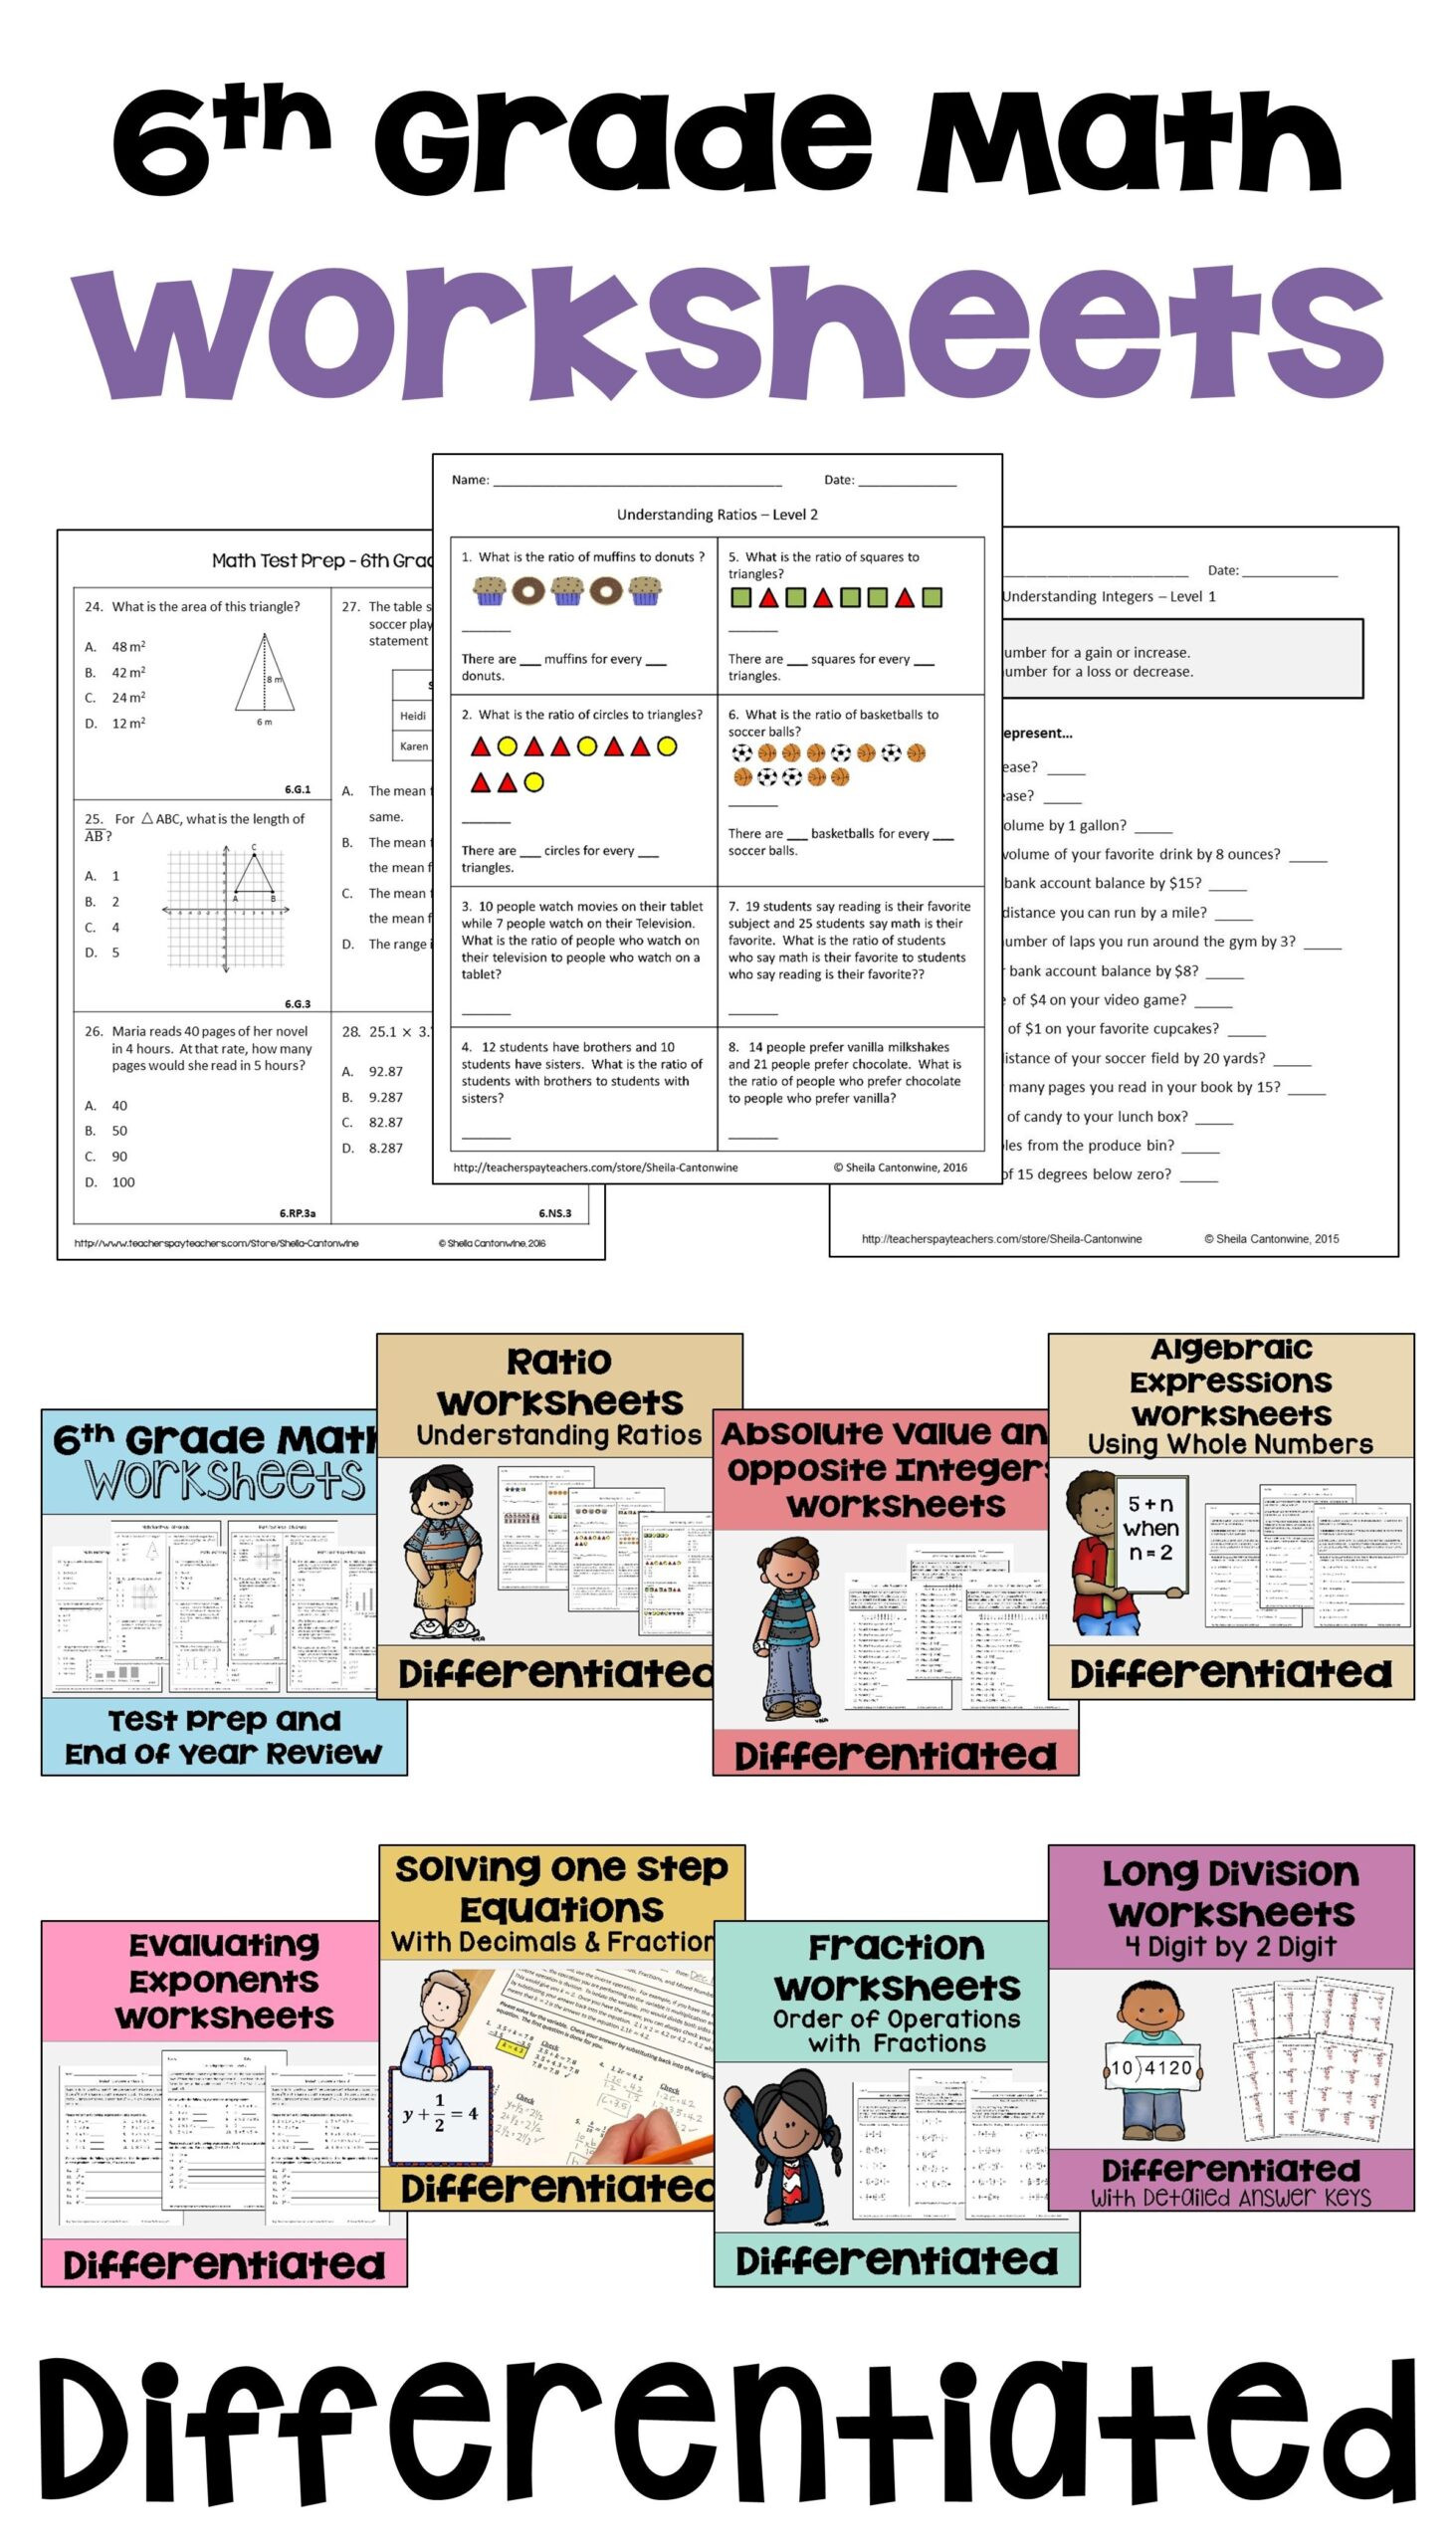 Kitchen Math Worksheets 6th Grade Math Differentiated Worksheet Bundle for Centers